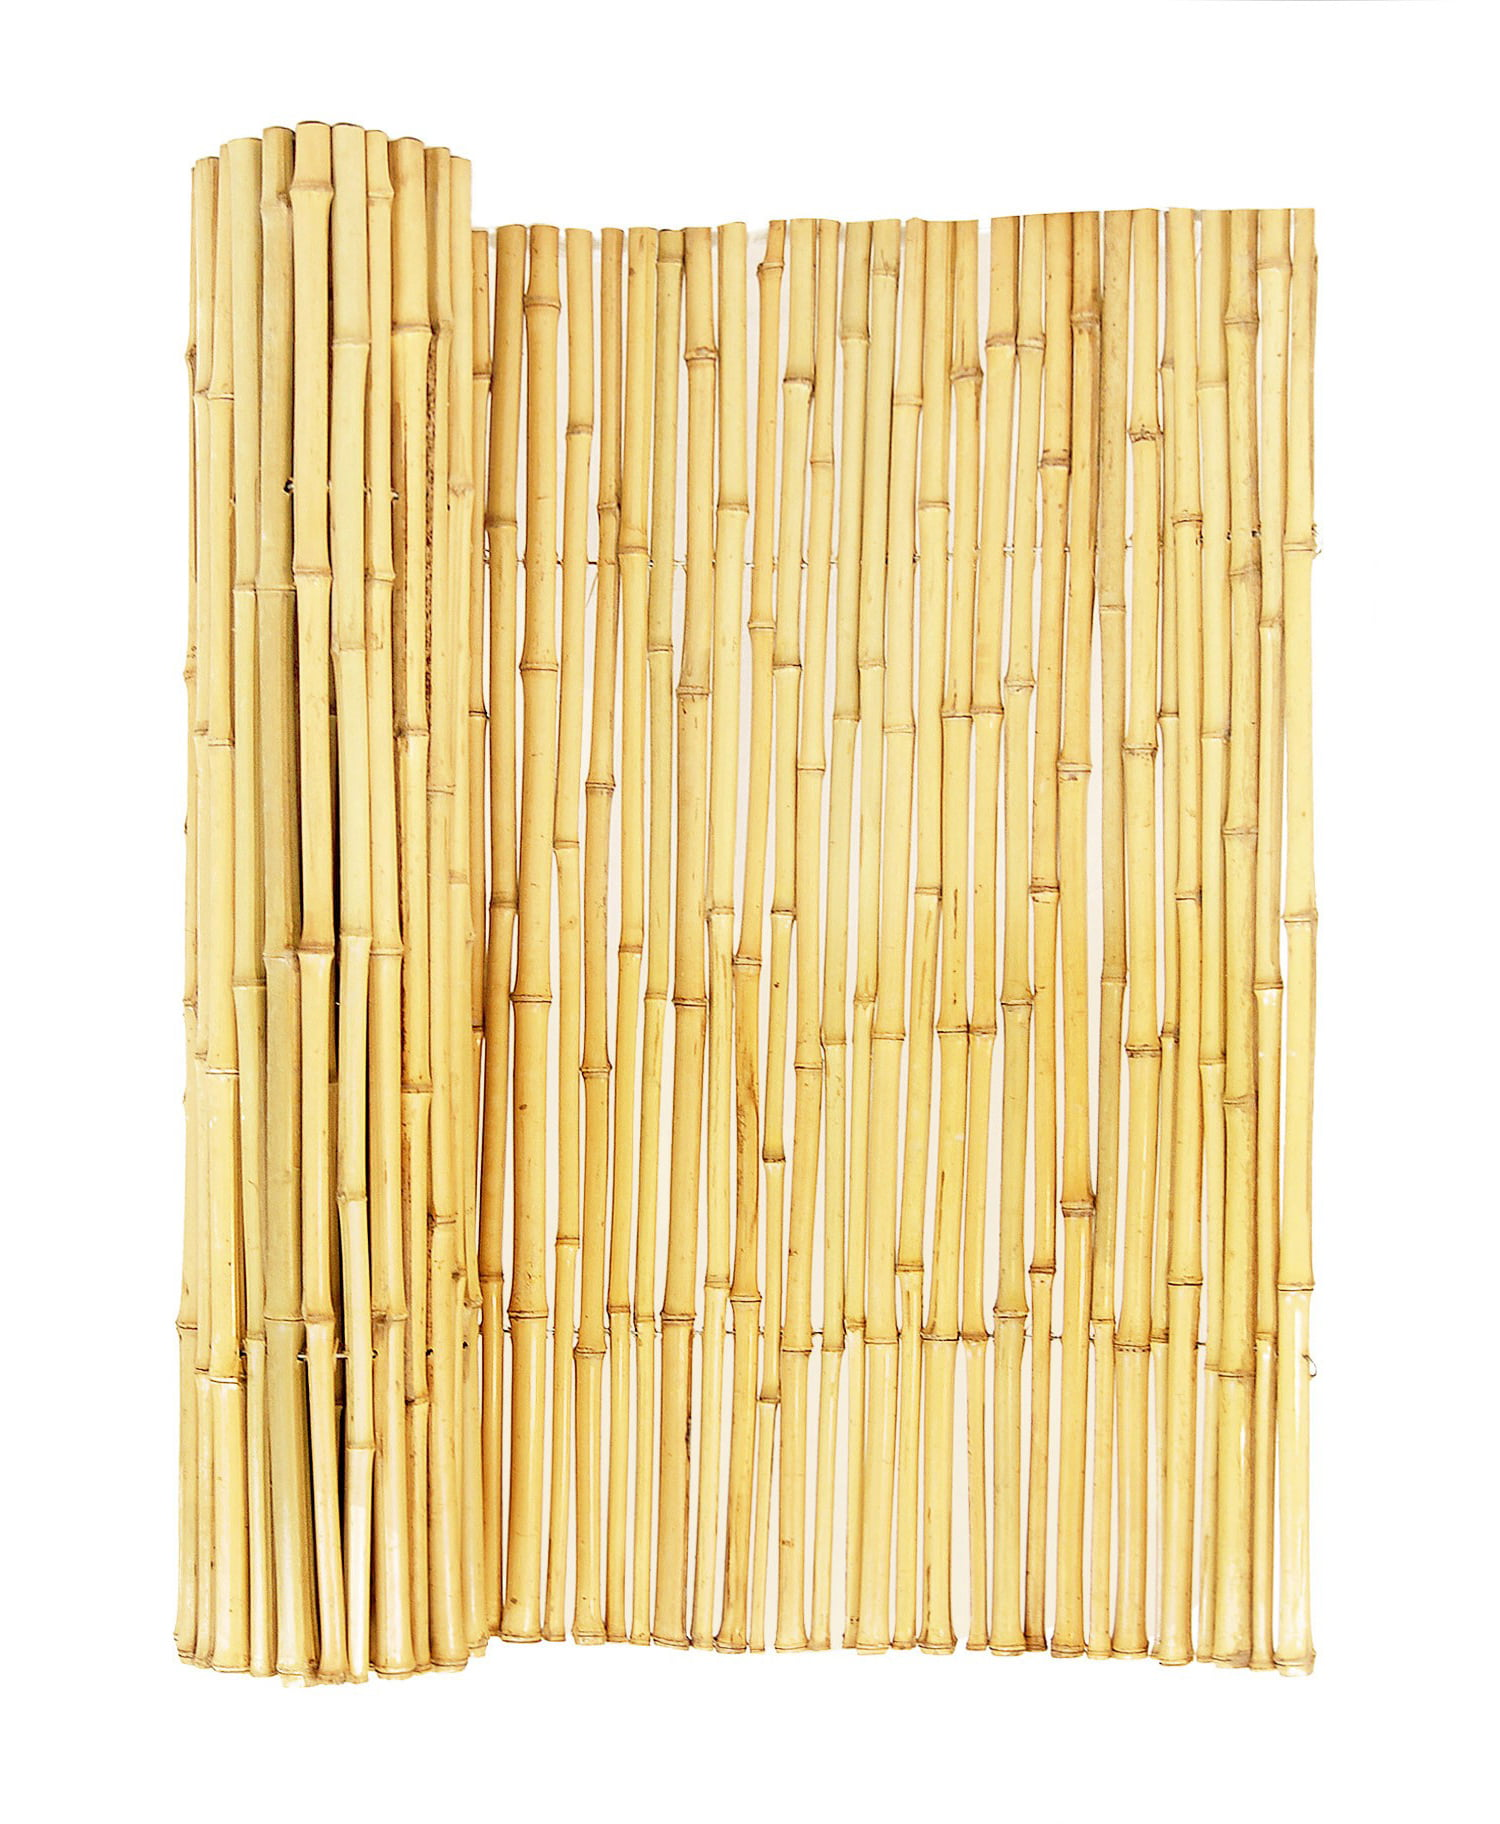 Backyard X Scapes Inc Natural Rolled Bamboo Fence 3 4 D H 8 L